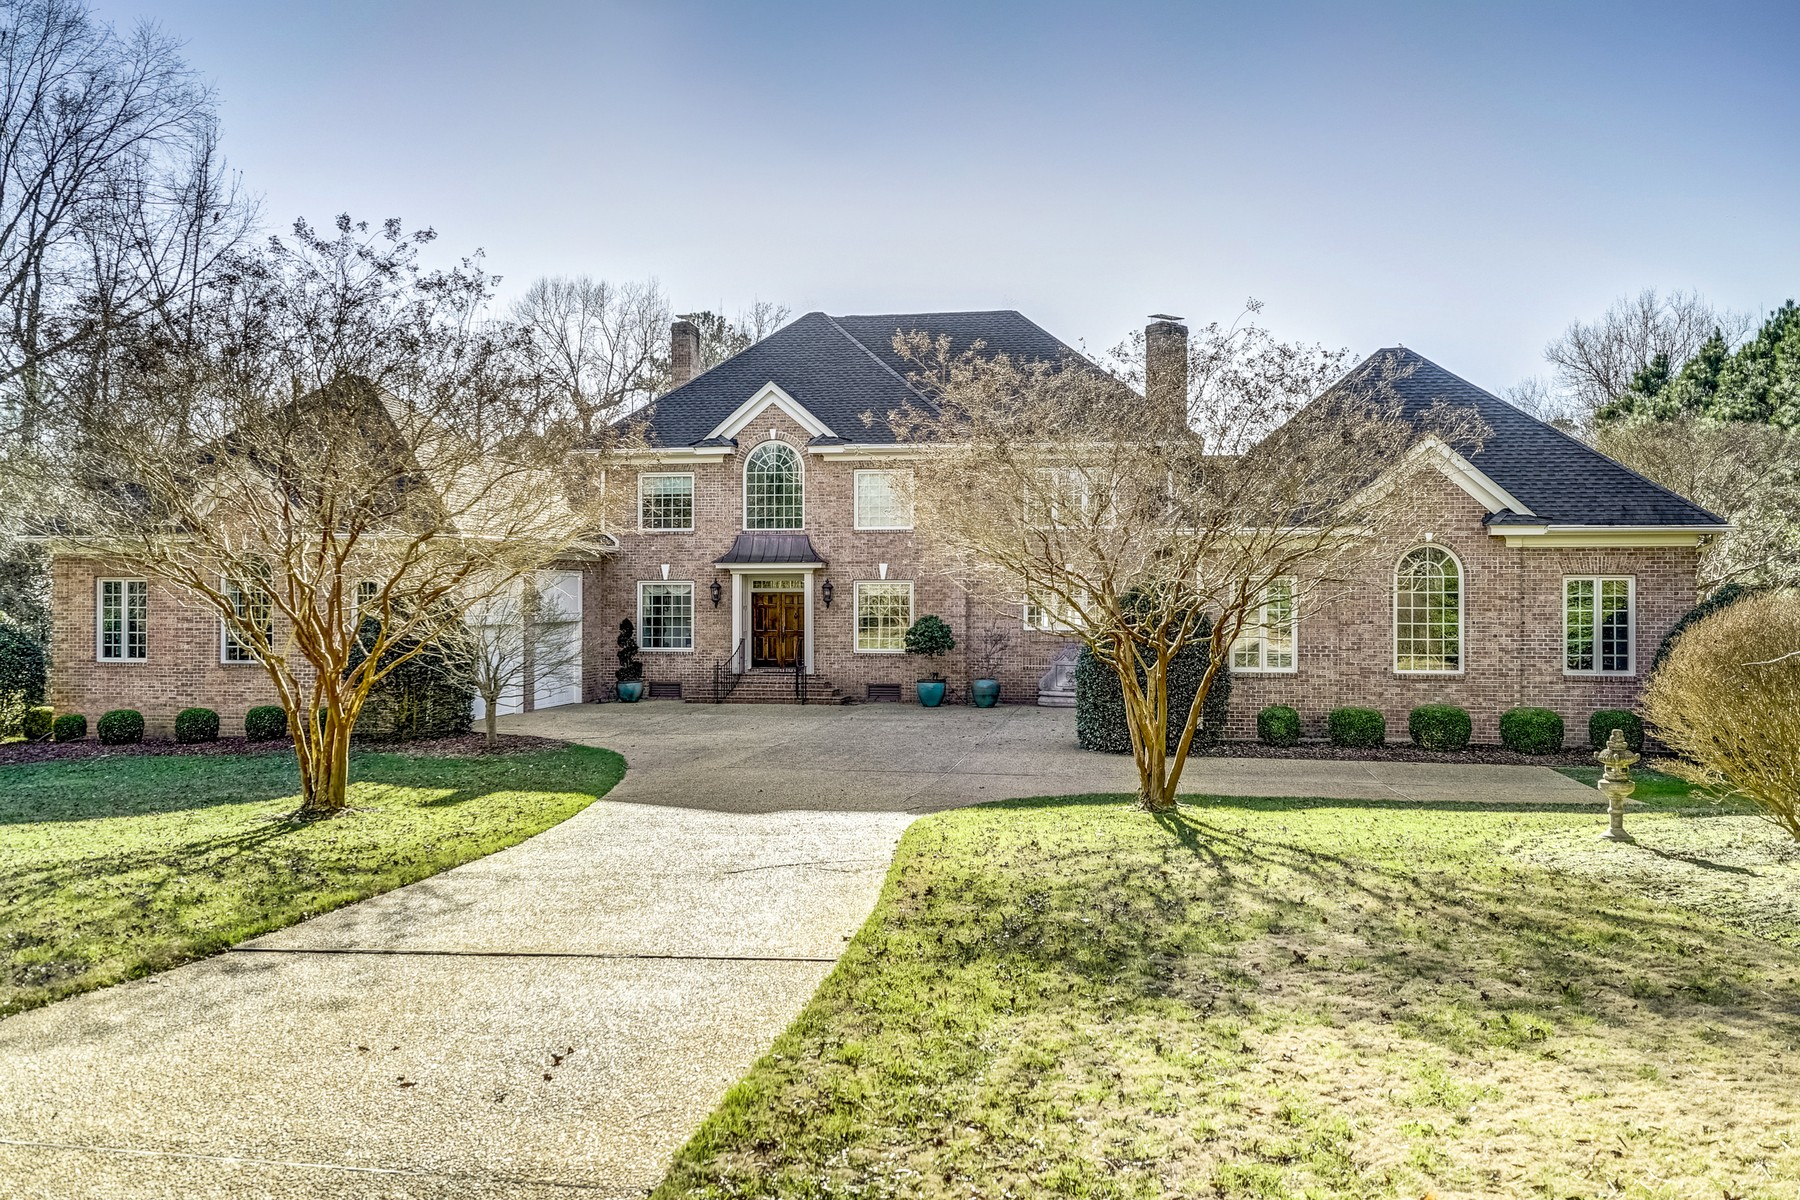 Single Family Home for Active at 3508 Barretts Ferry Drive, Williamsburg 3508 Barretts Ferry Dr Williamsburg, Virginia 23185 United States